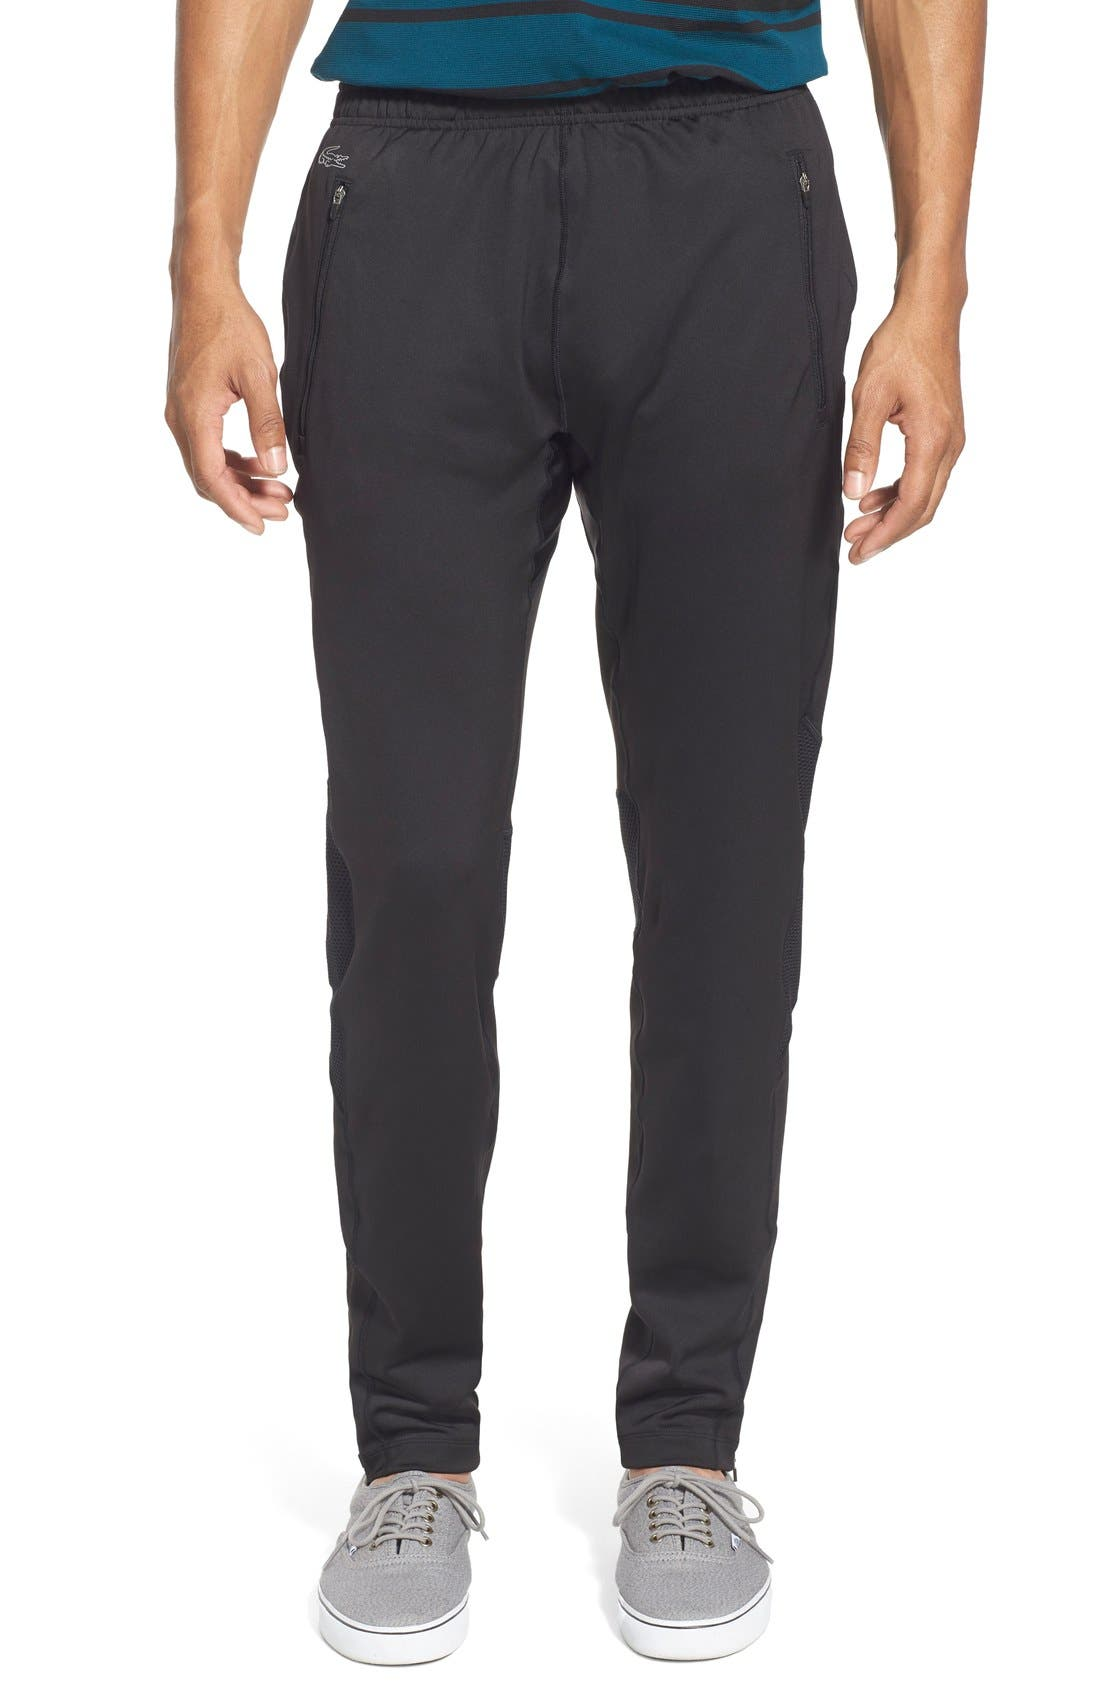 'Sport' Ultra Dry Stretch Performance Track Pants,                         Main,                         color, Black